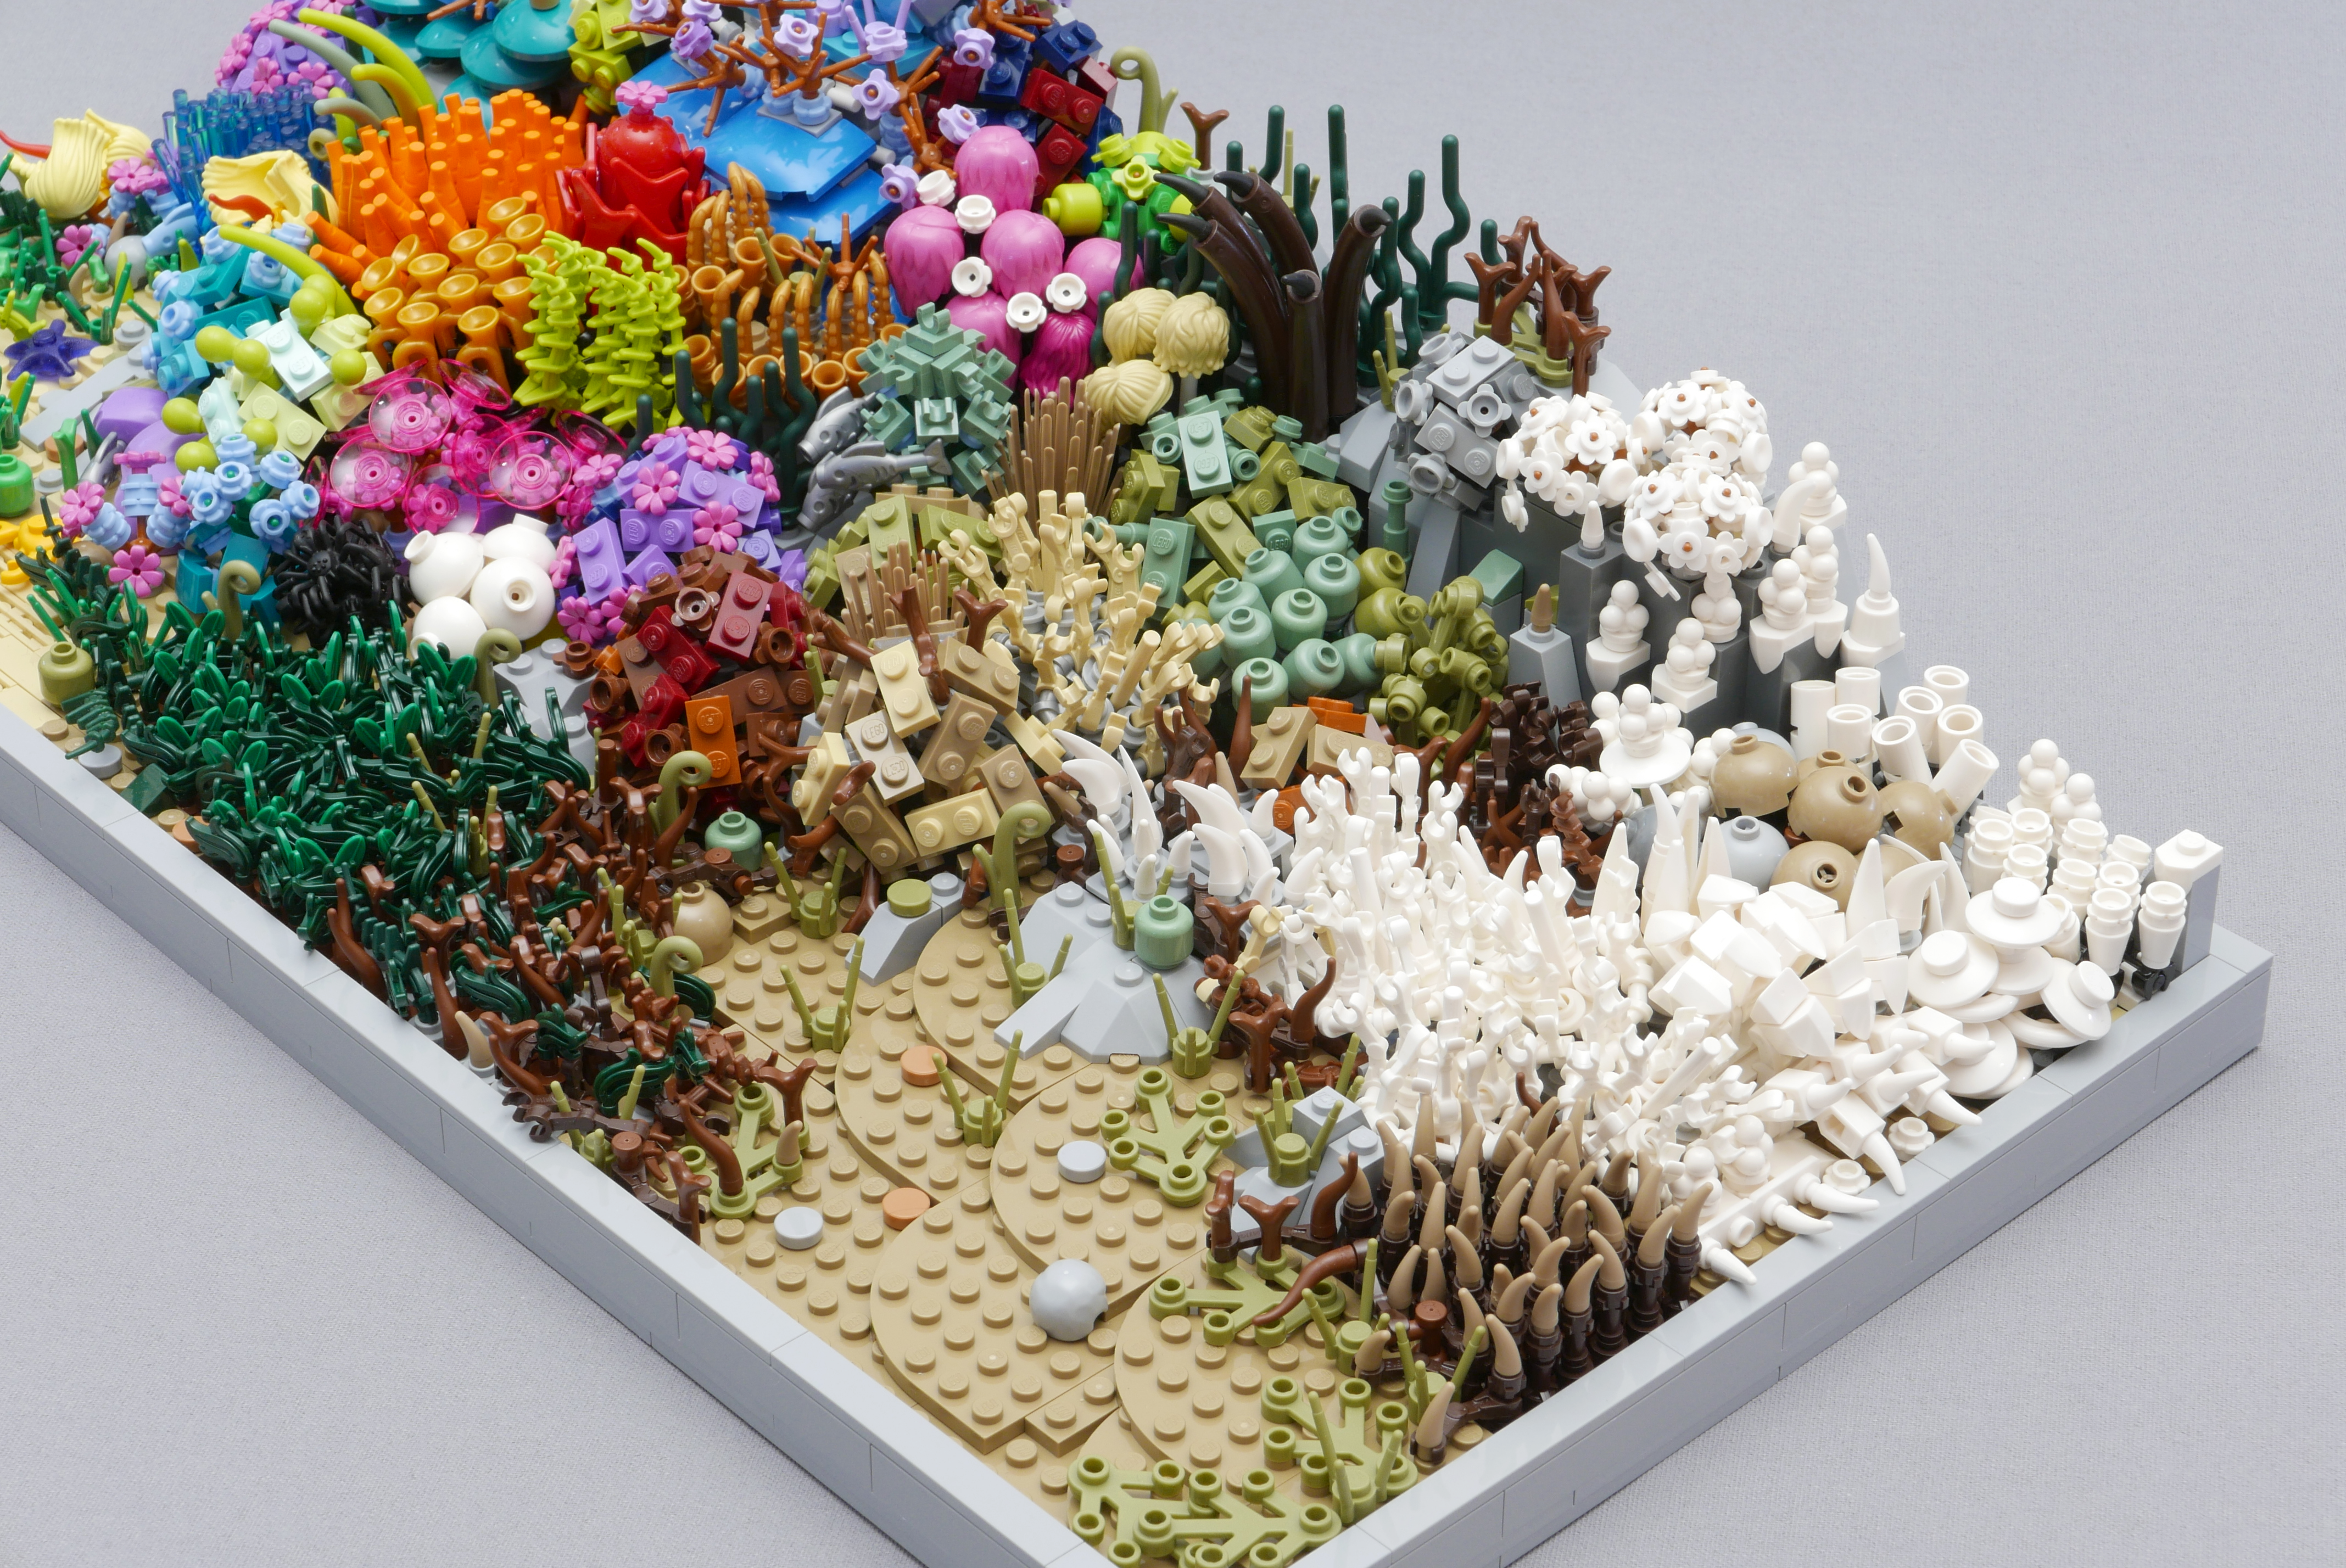 lego coral bleaching 2